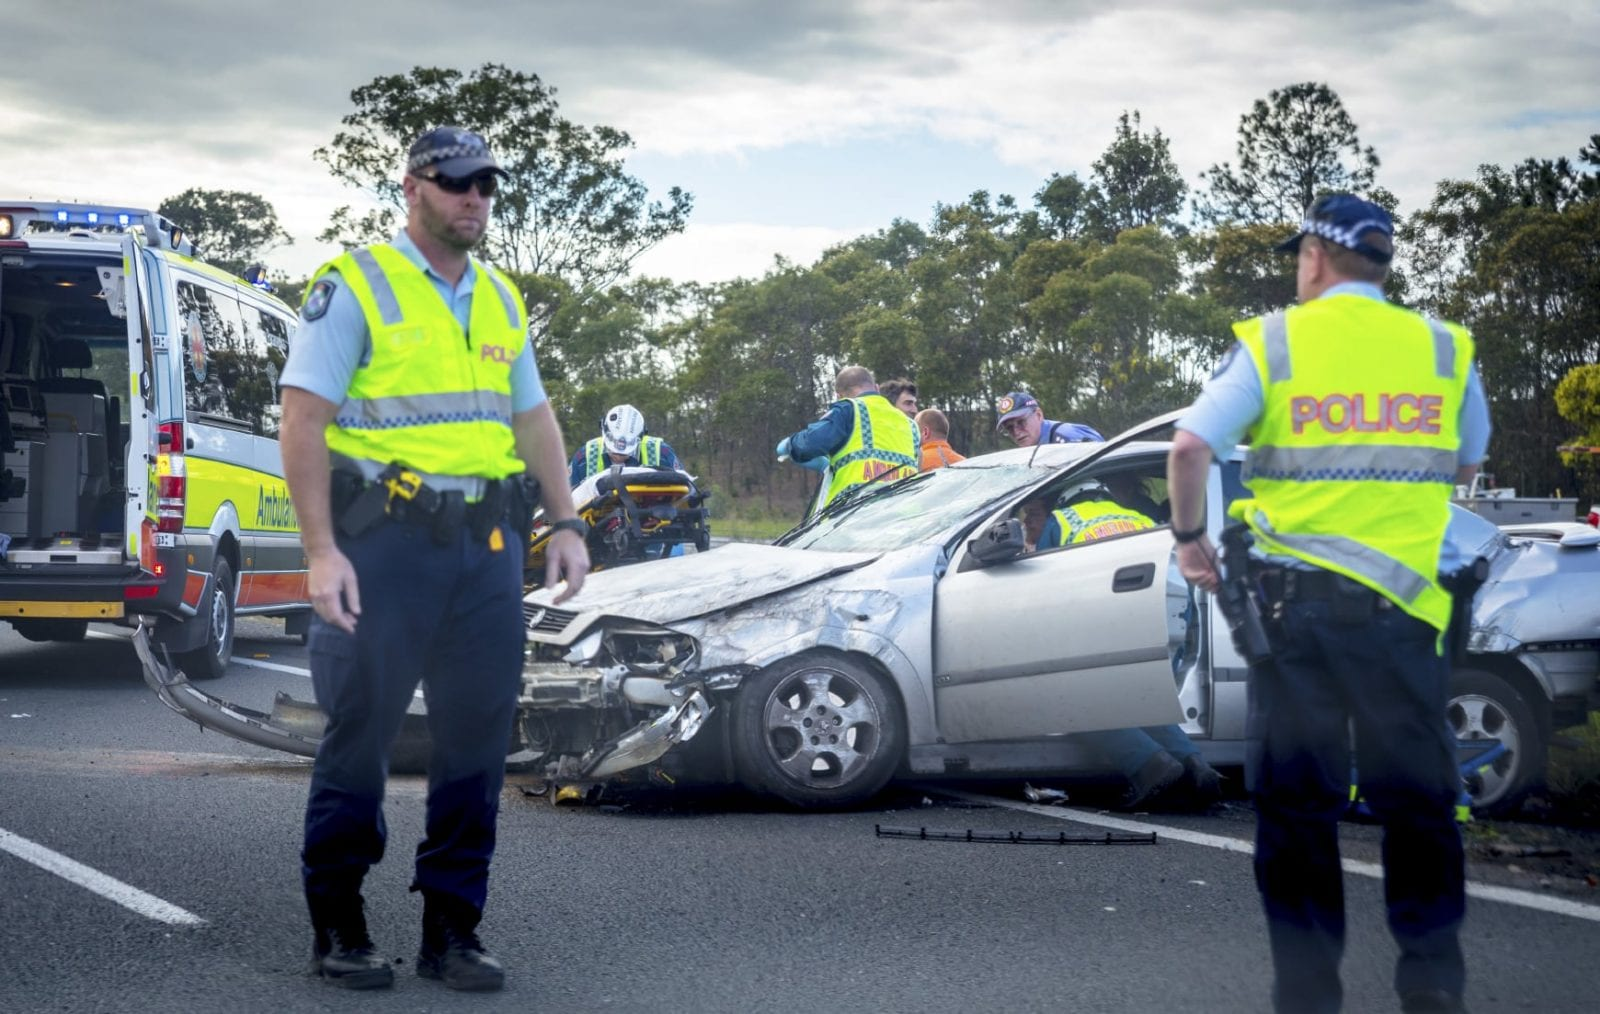 Car Accident Stock Photo With Police